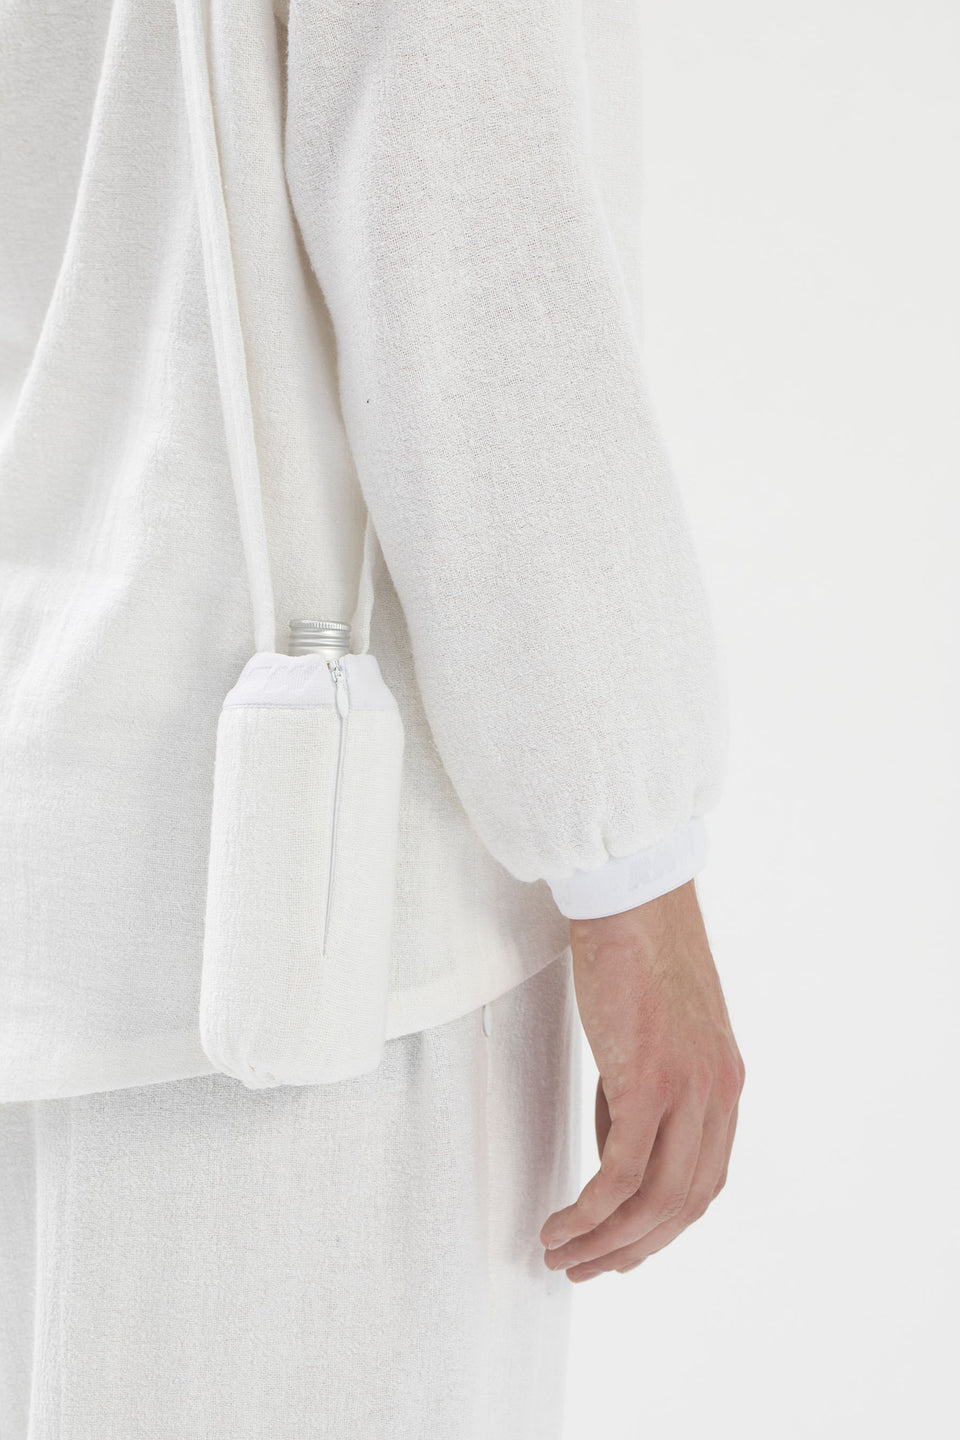 RAW U-Bottle Bag White (sample)